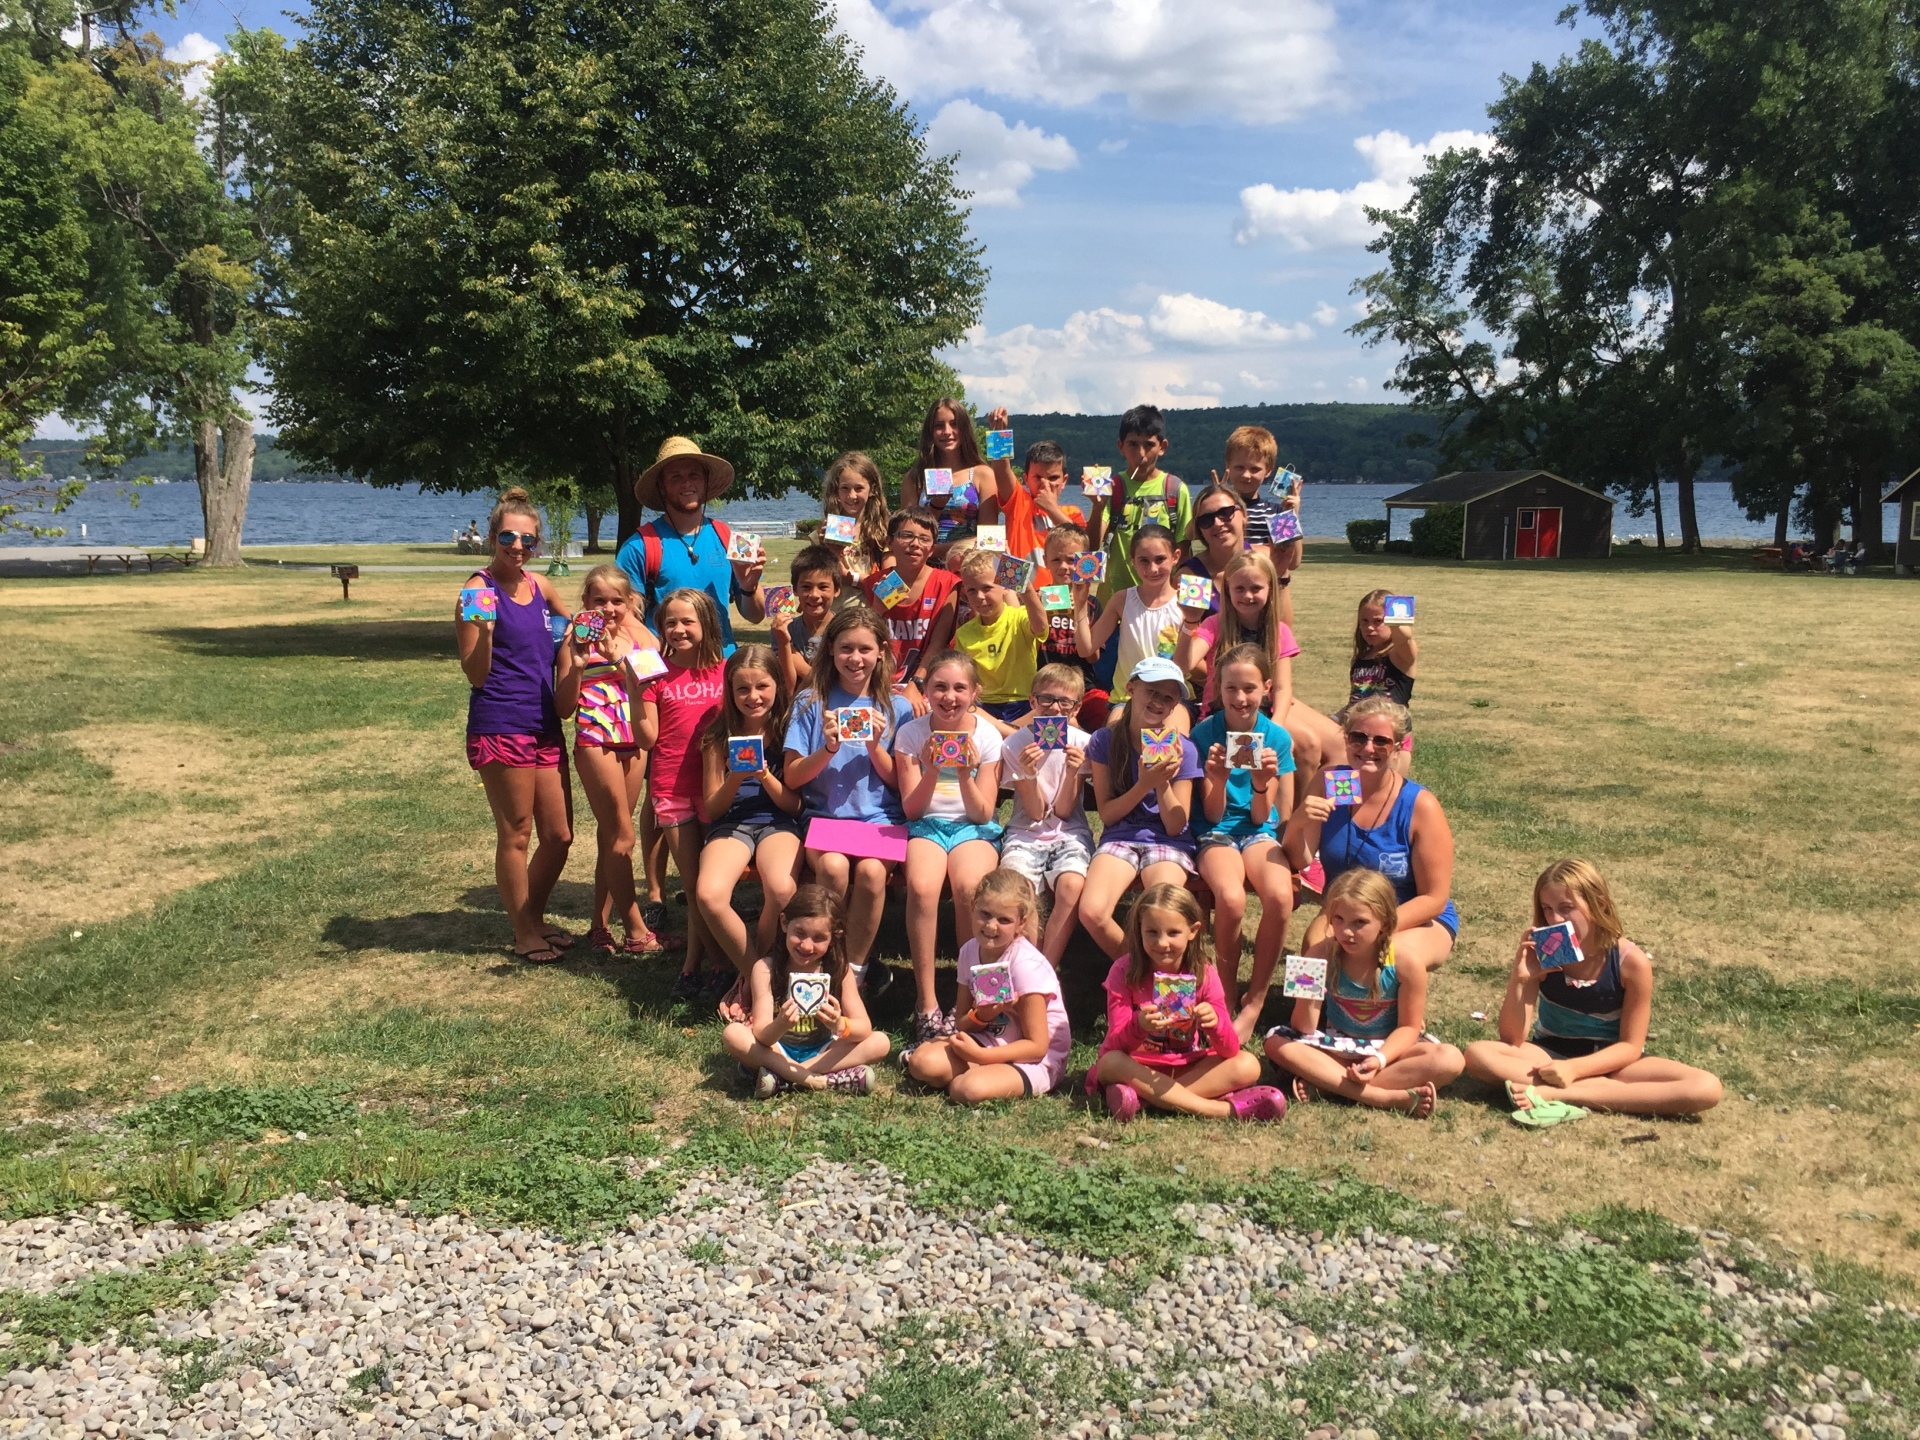 Canandaigua Park & Rec. Kids Summer Camp 2016